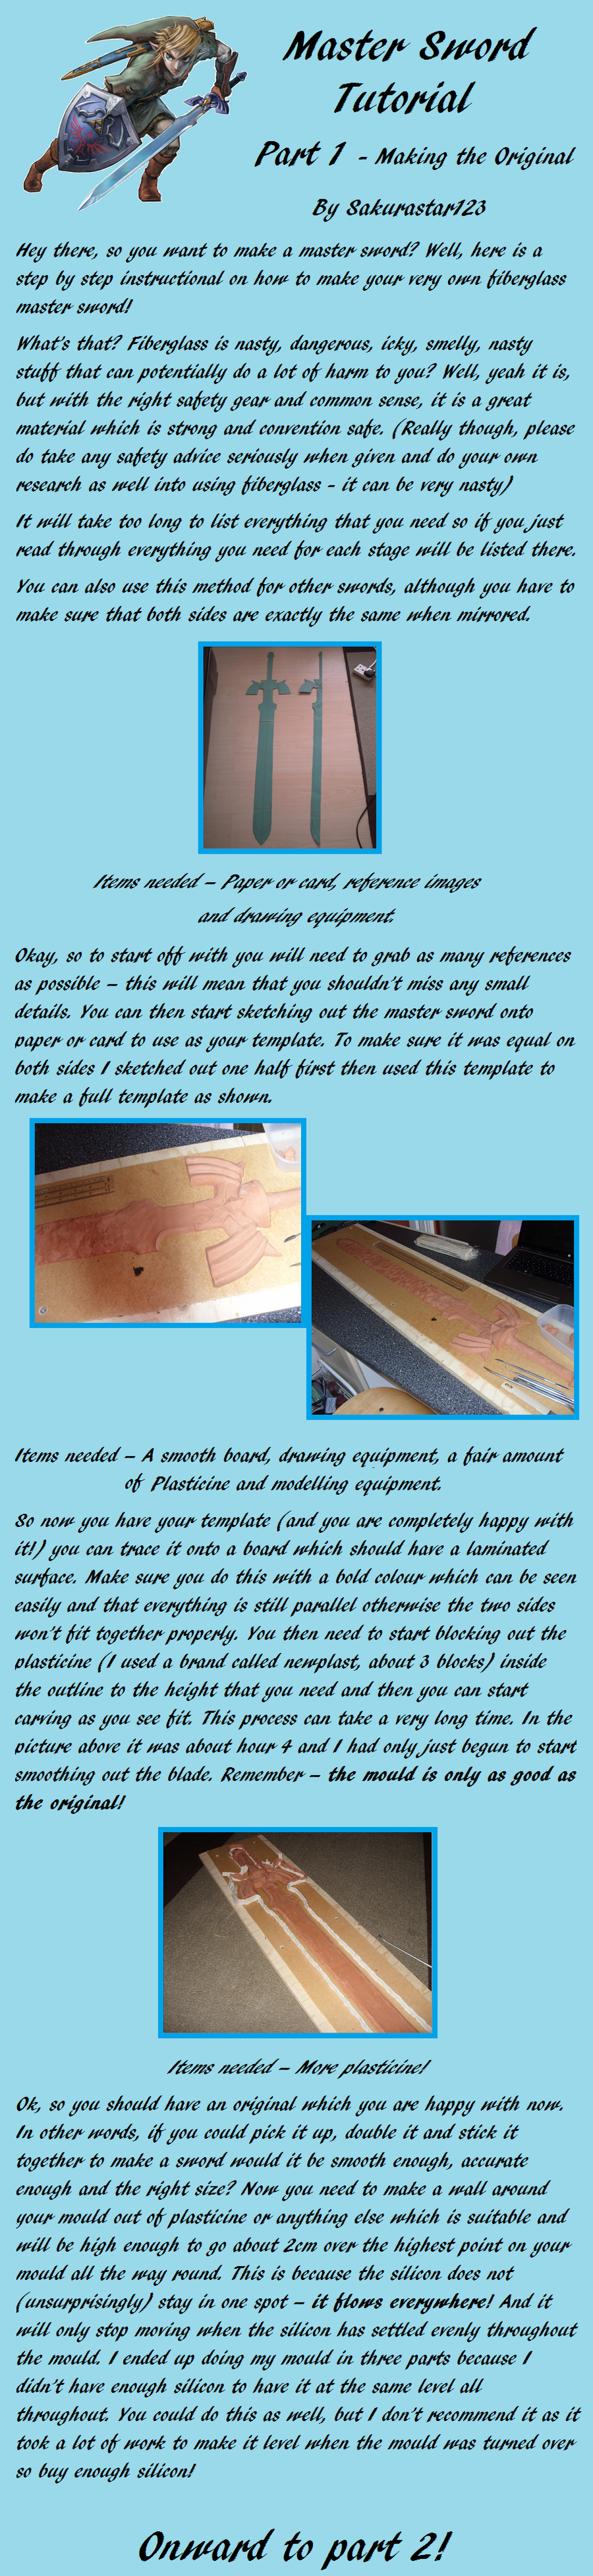 Master sword tutorial part 1 by sakurastar123 on deviantart master sword tutorial part 1 by sakurastar123 on deviantart link cosplaycosplay baditri Images